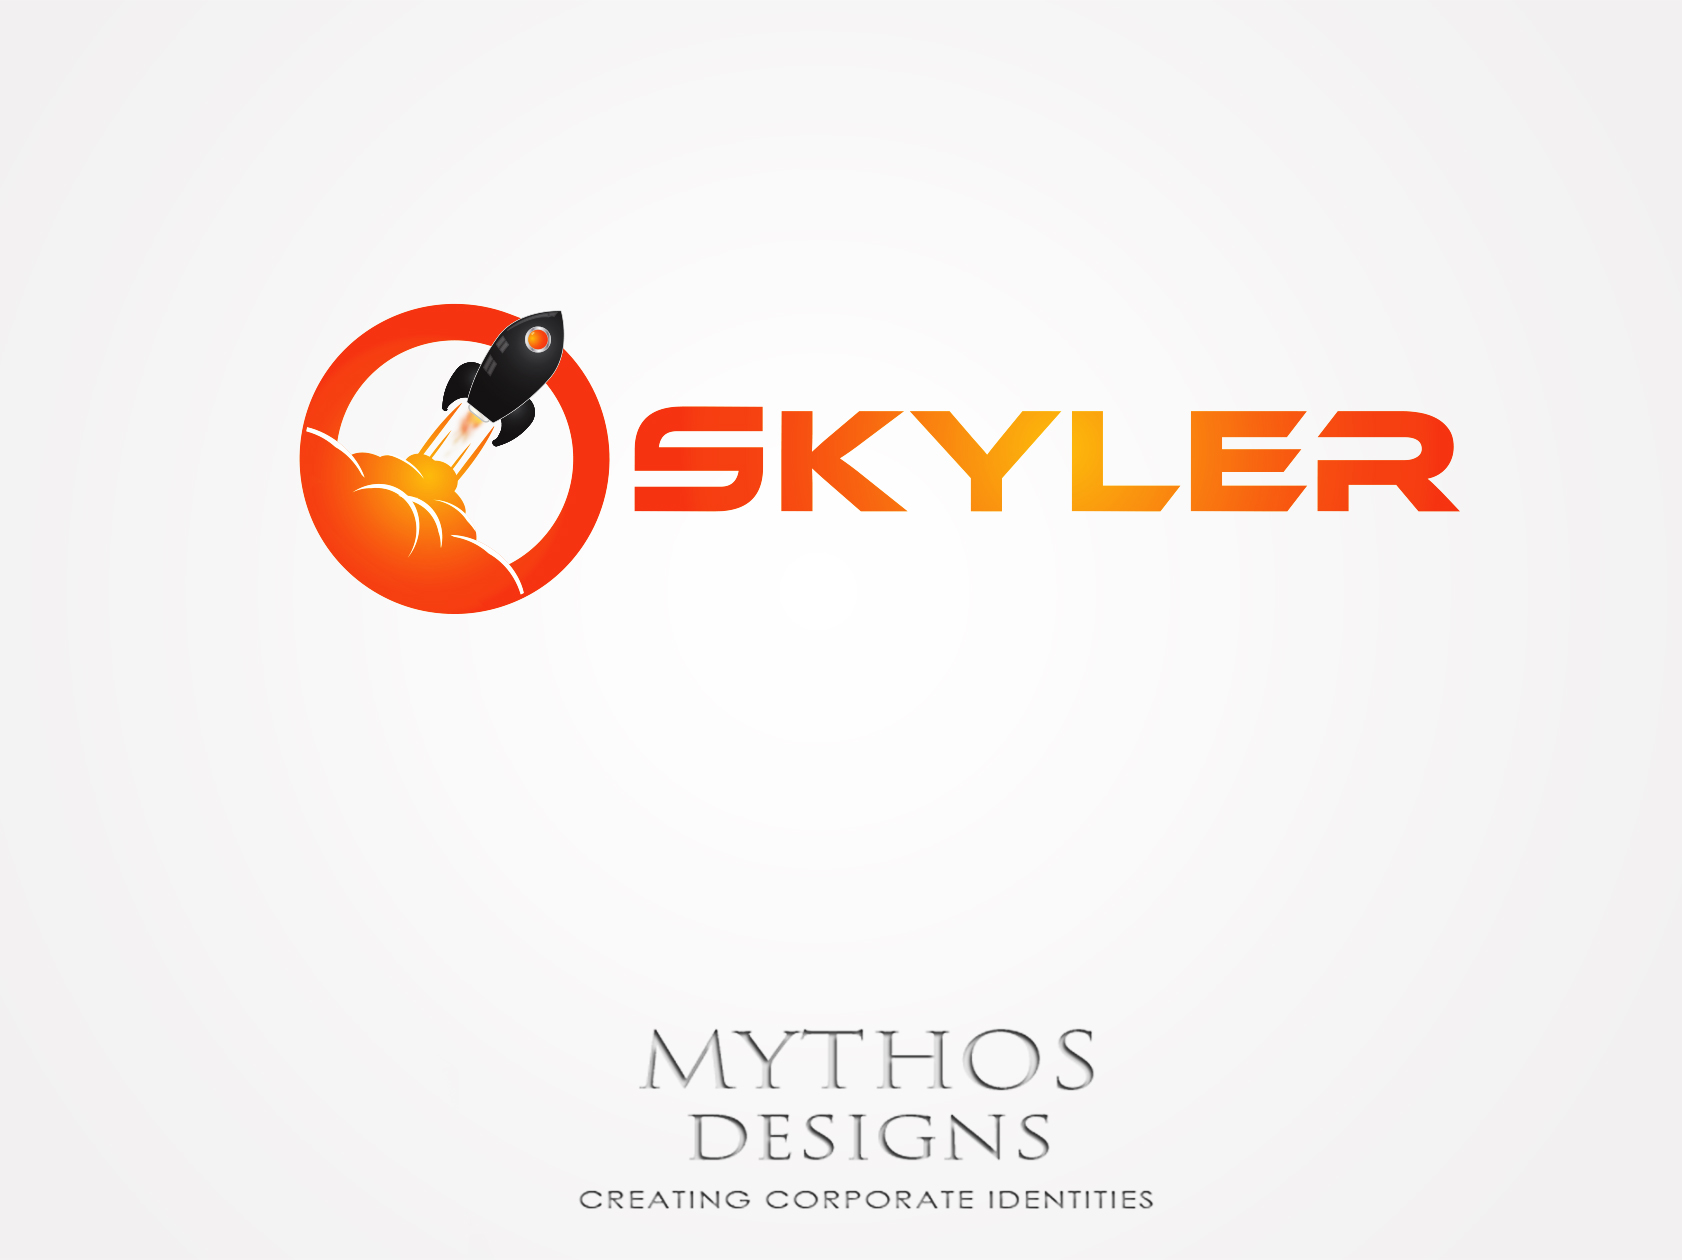 Logo Design by Mythos Designs - Entry No. 108 in the Logo Design Contest Artistic Logo Design for Skyler.Asia.